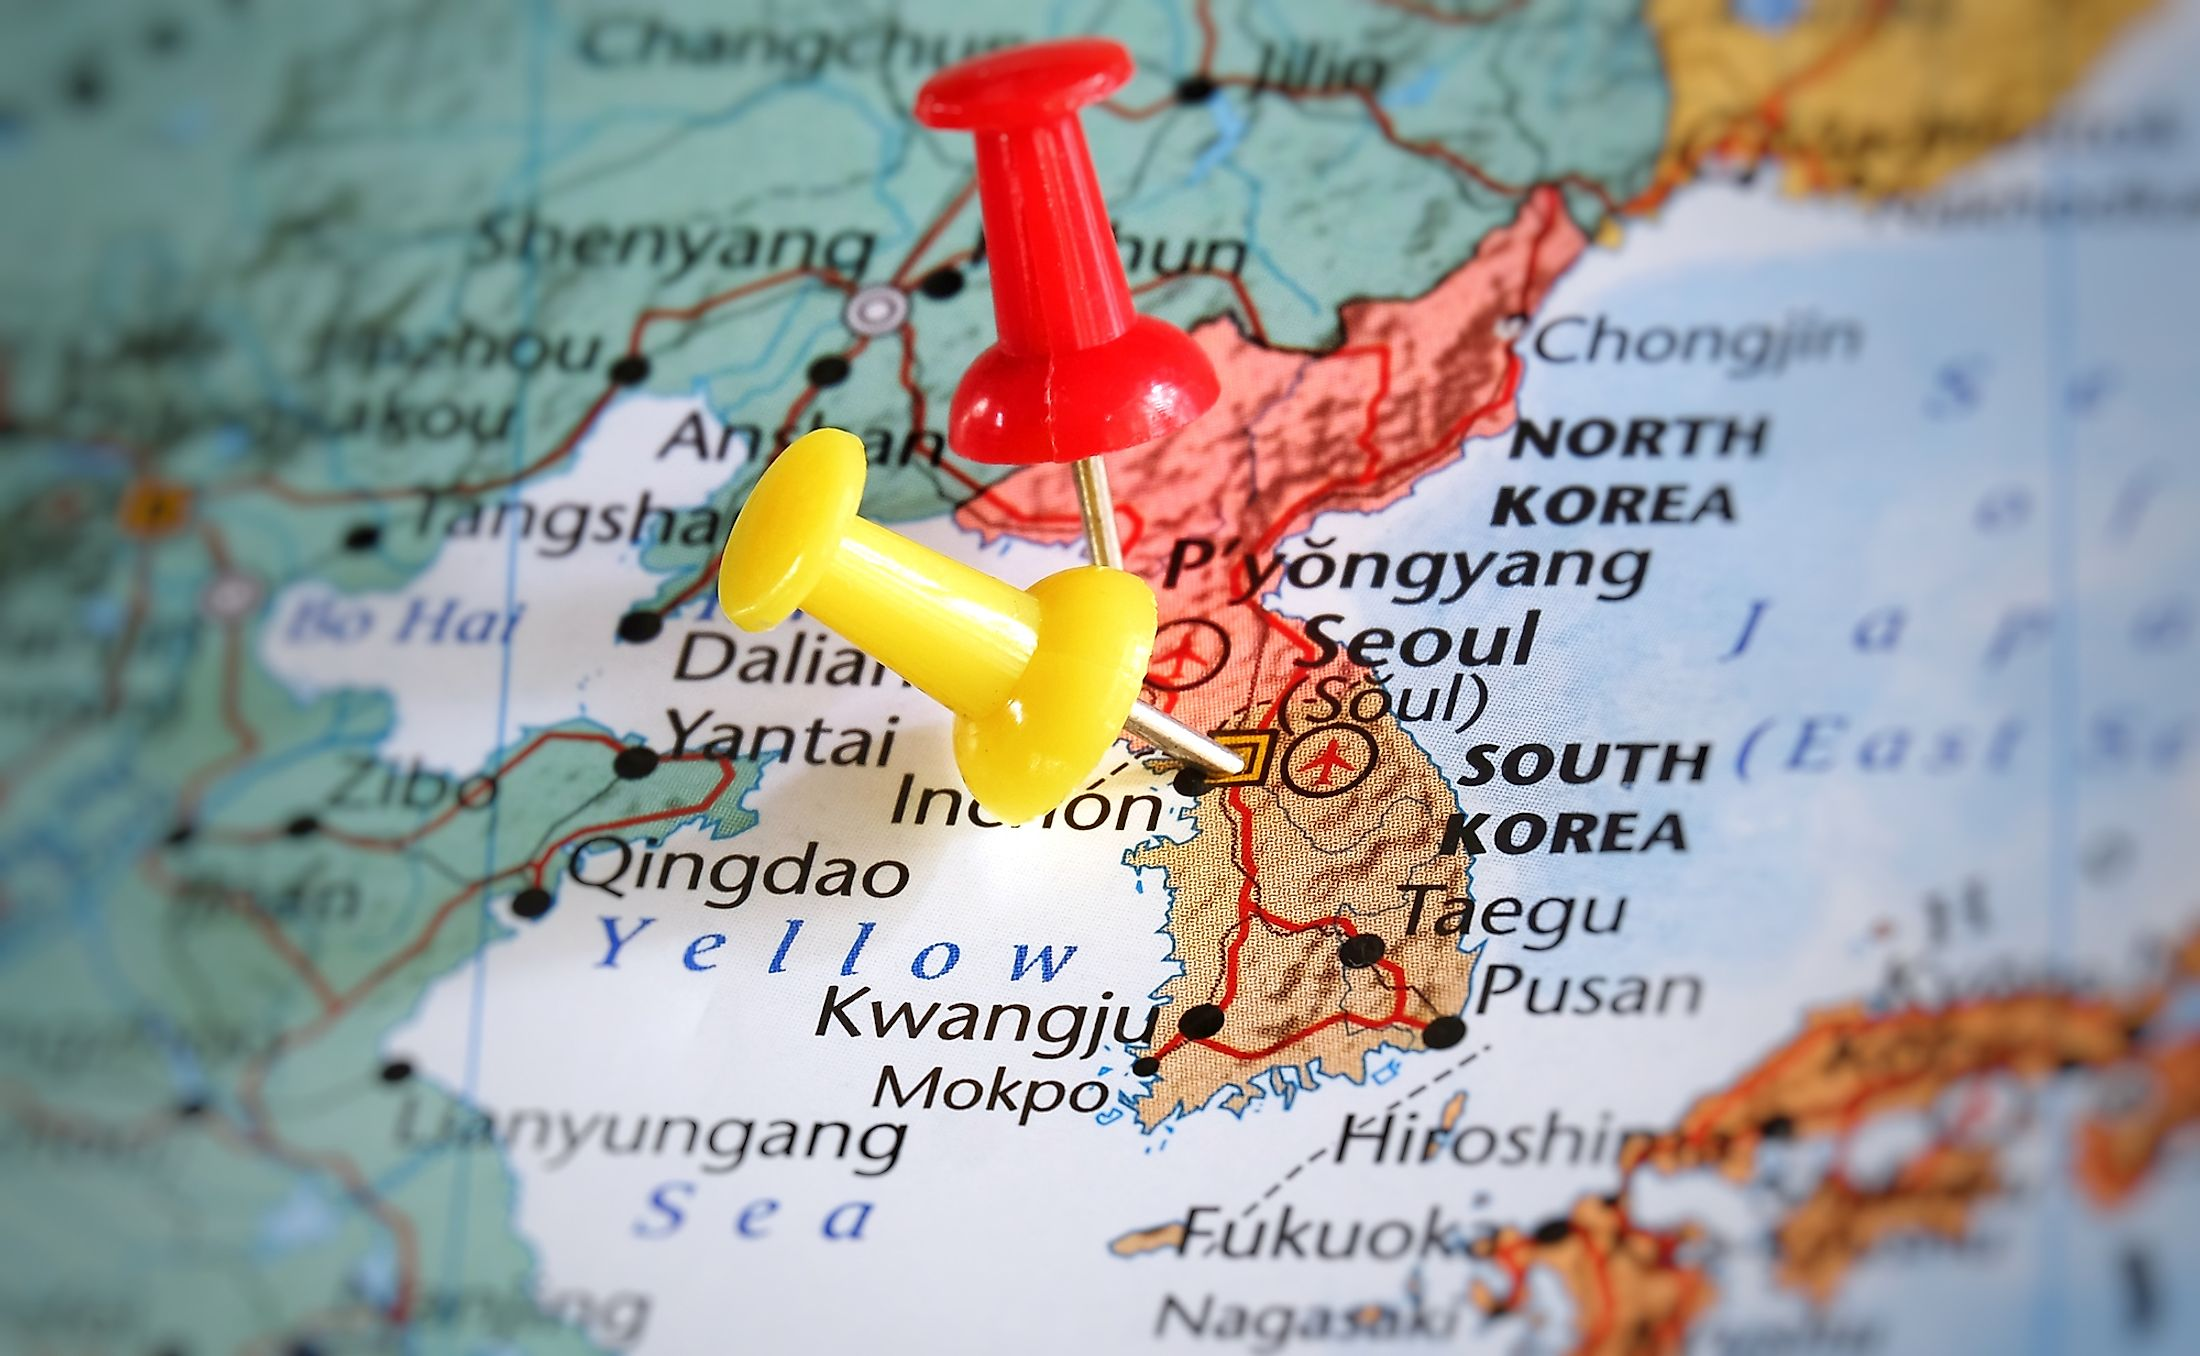 Korea was split in half after World War II by the USSR and United States